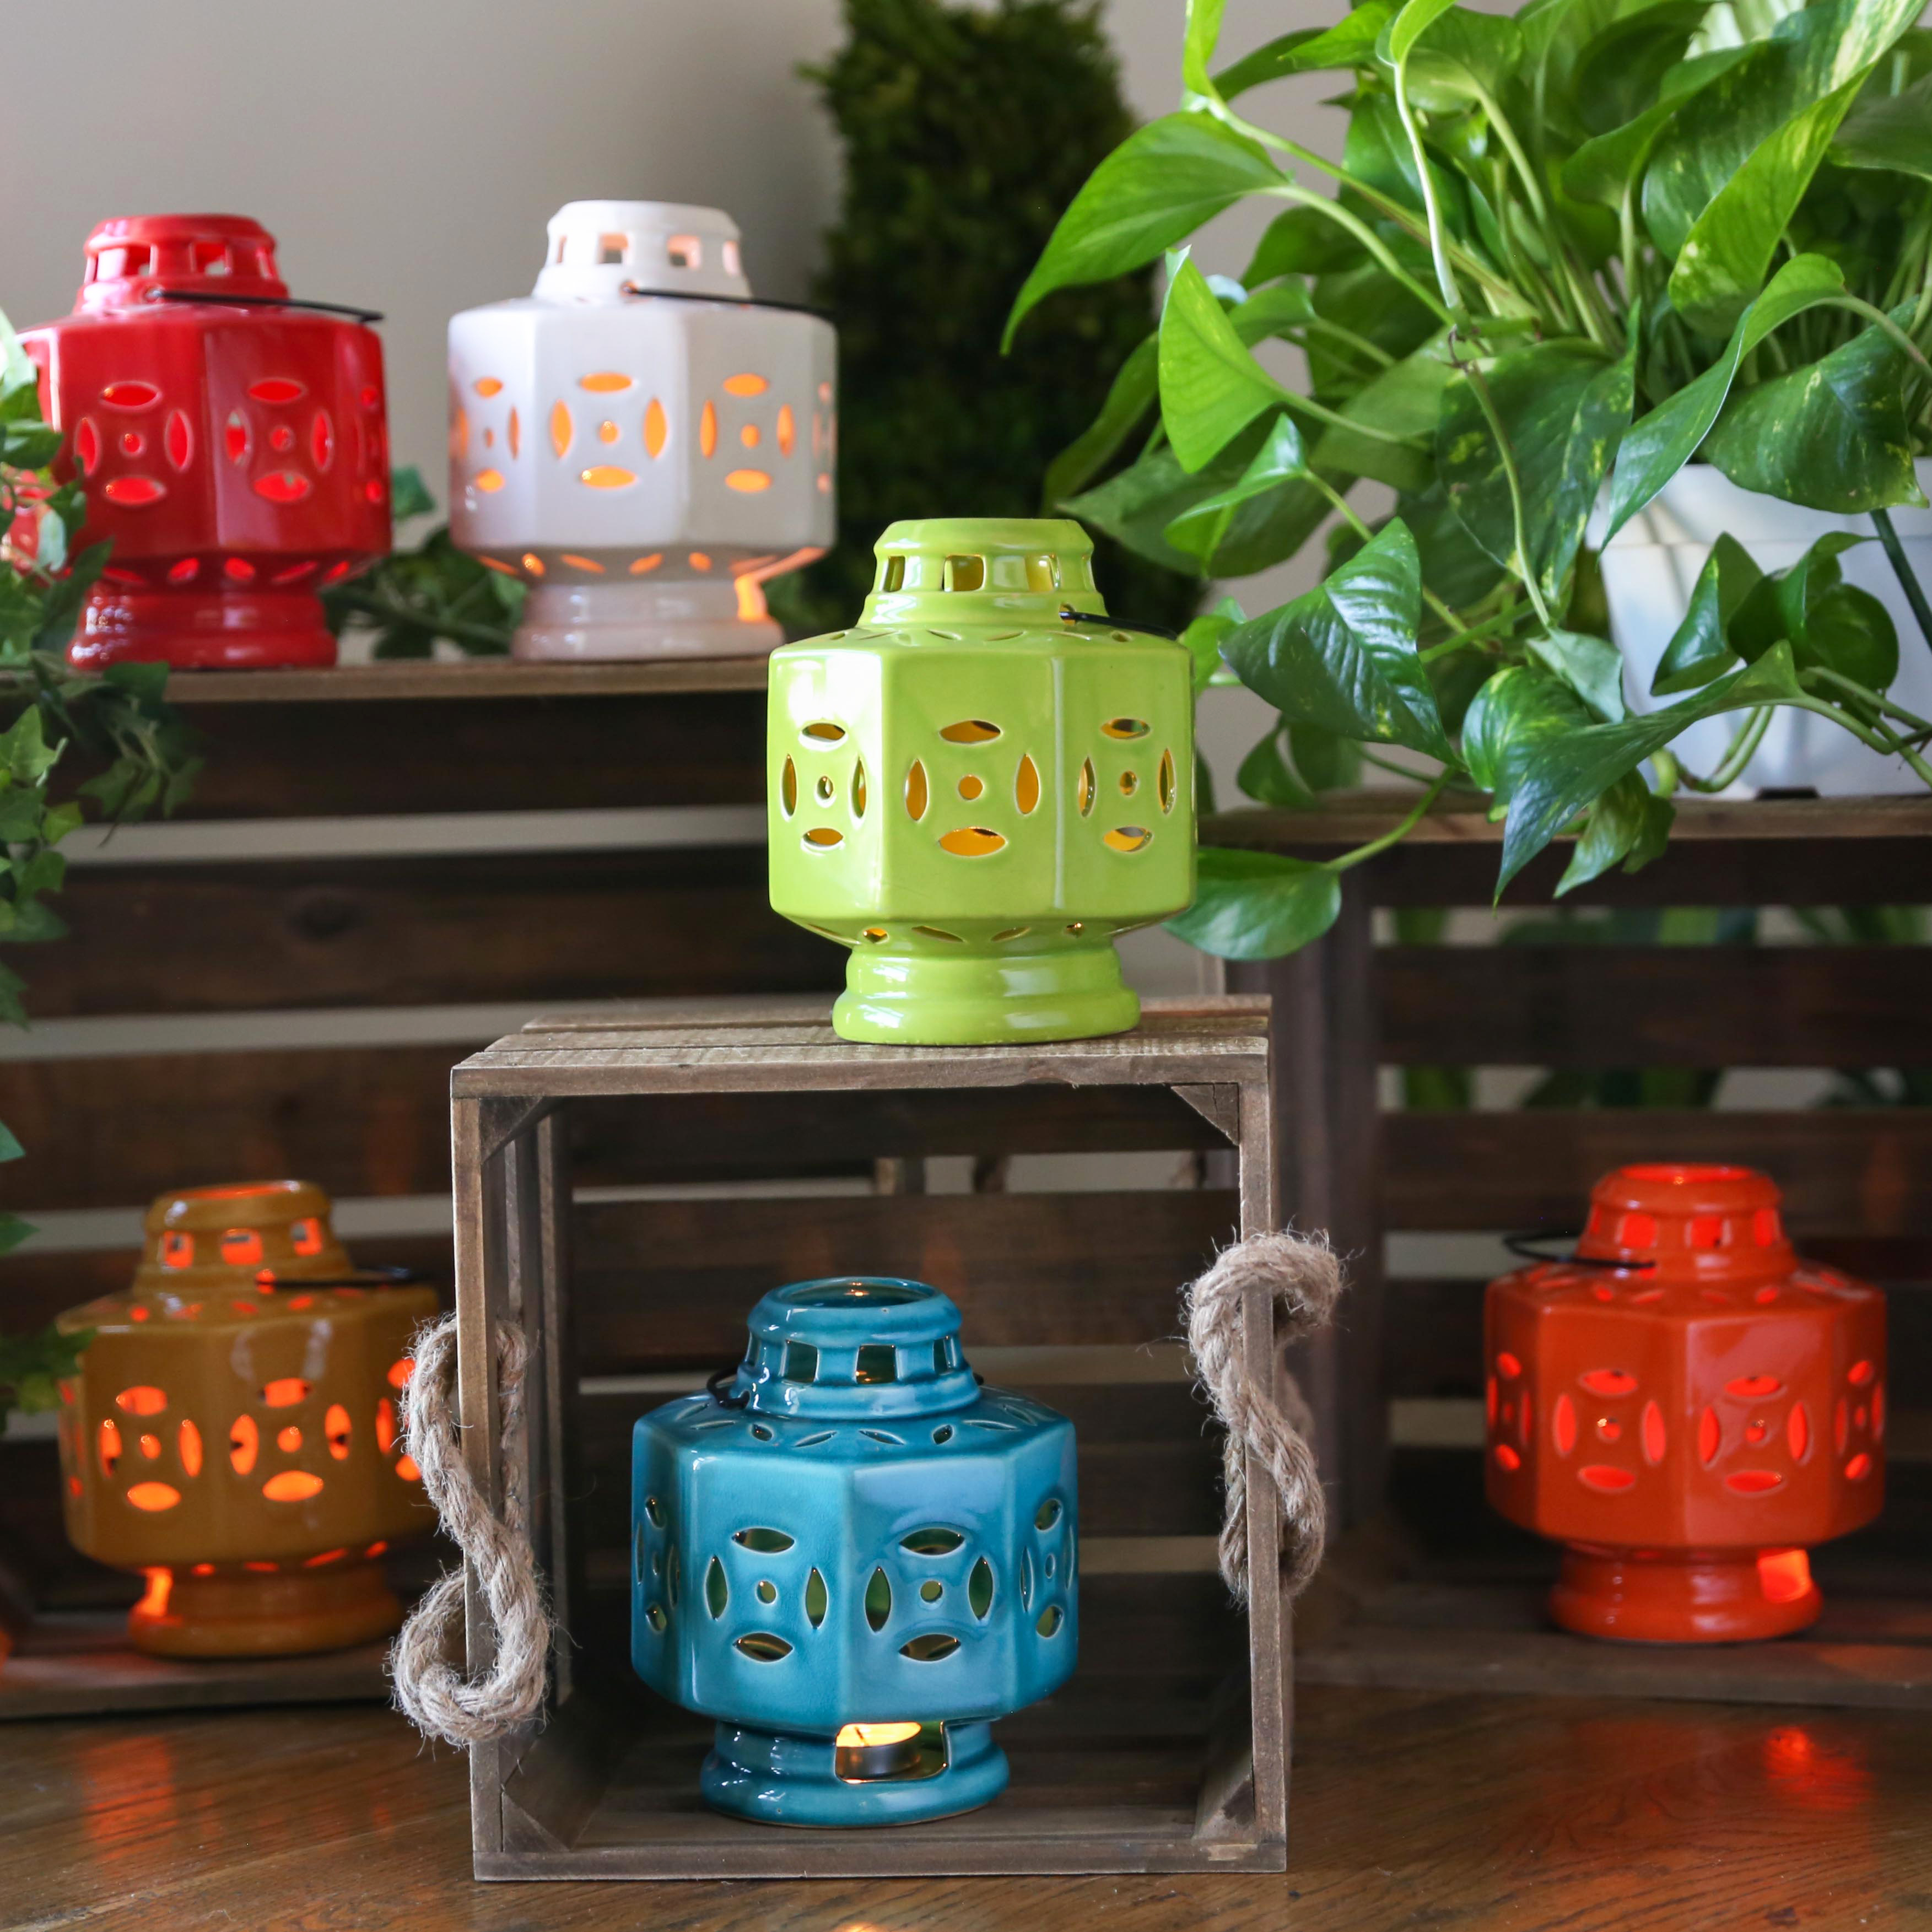 Urban Trends Collection: Ceramic Hand Lantern, Gloss Finish, White, Red, Orange, Yellow, Green, Turquoise